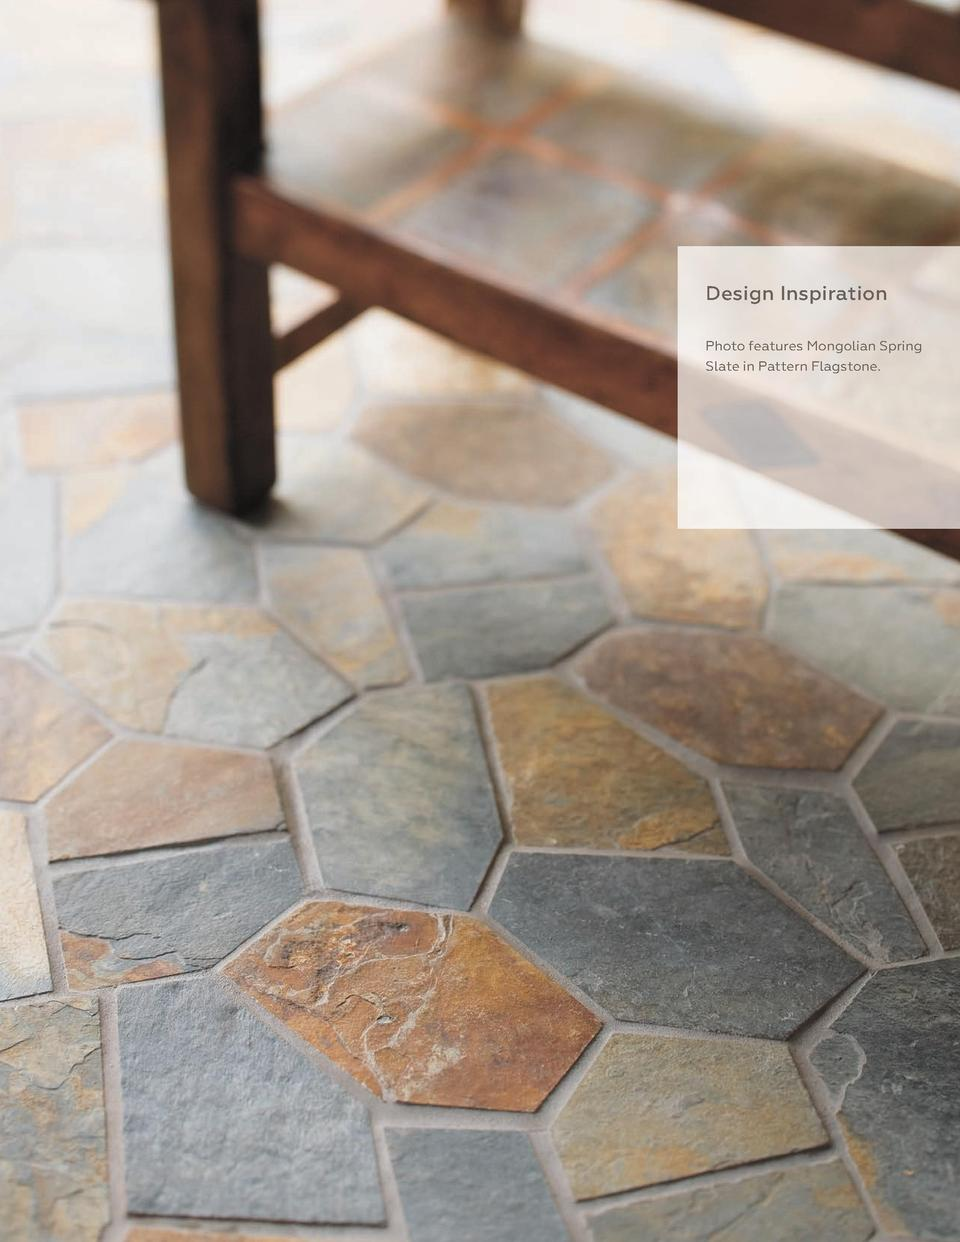 429  Design Inspiration Photo features Mongolian Spring Slate in Pattern Flagstone.  S P R I N G 2 01 5 I MAG I N E W HAT ...